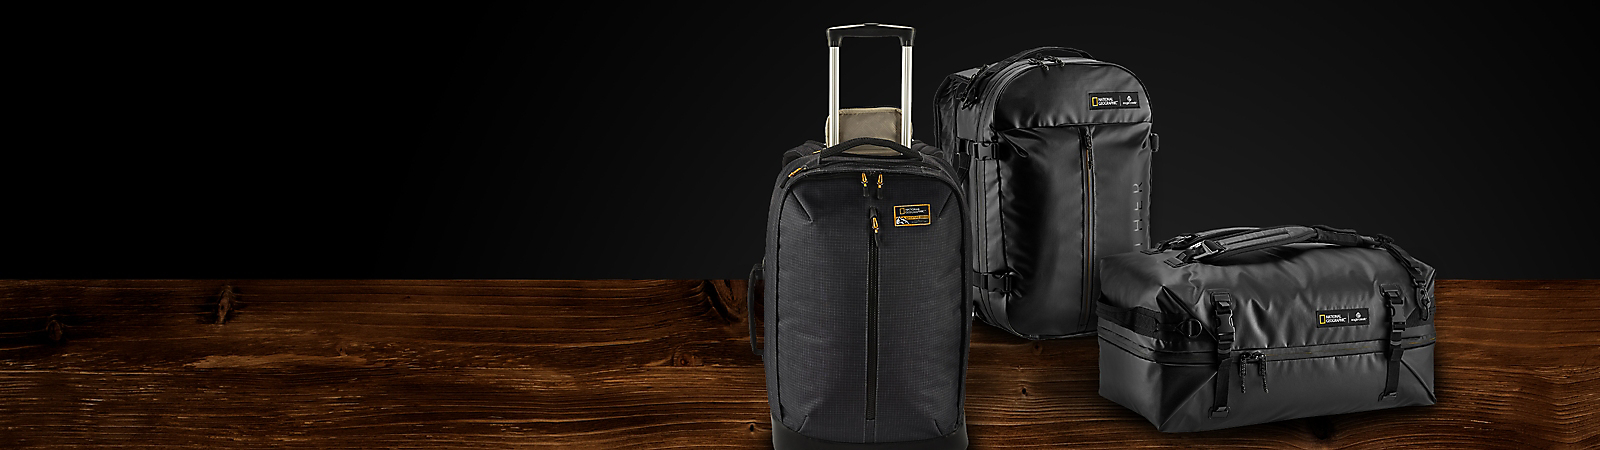 Background image of National Geographic Accessories